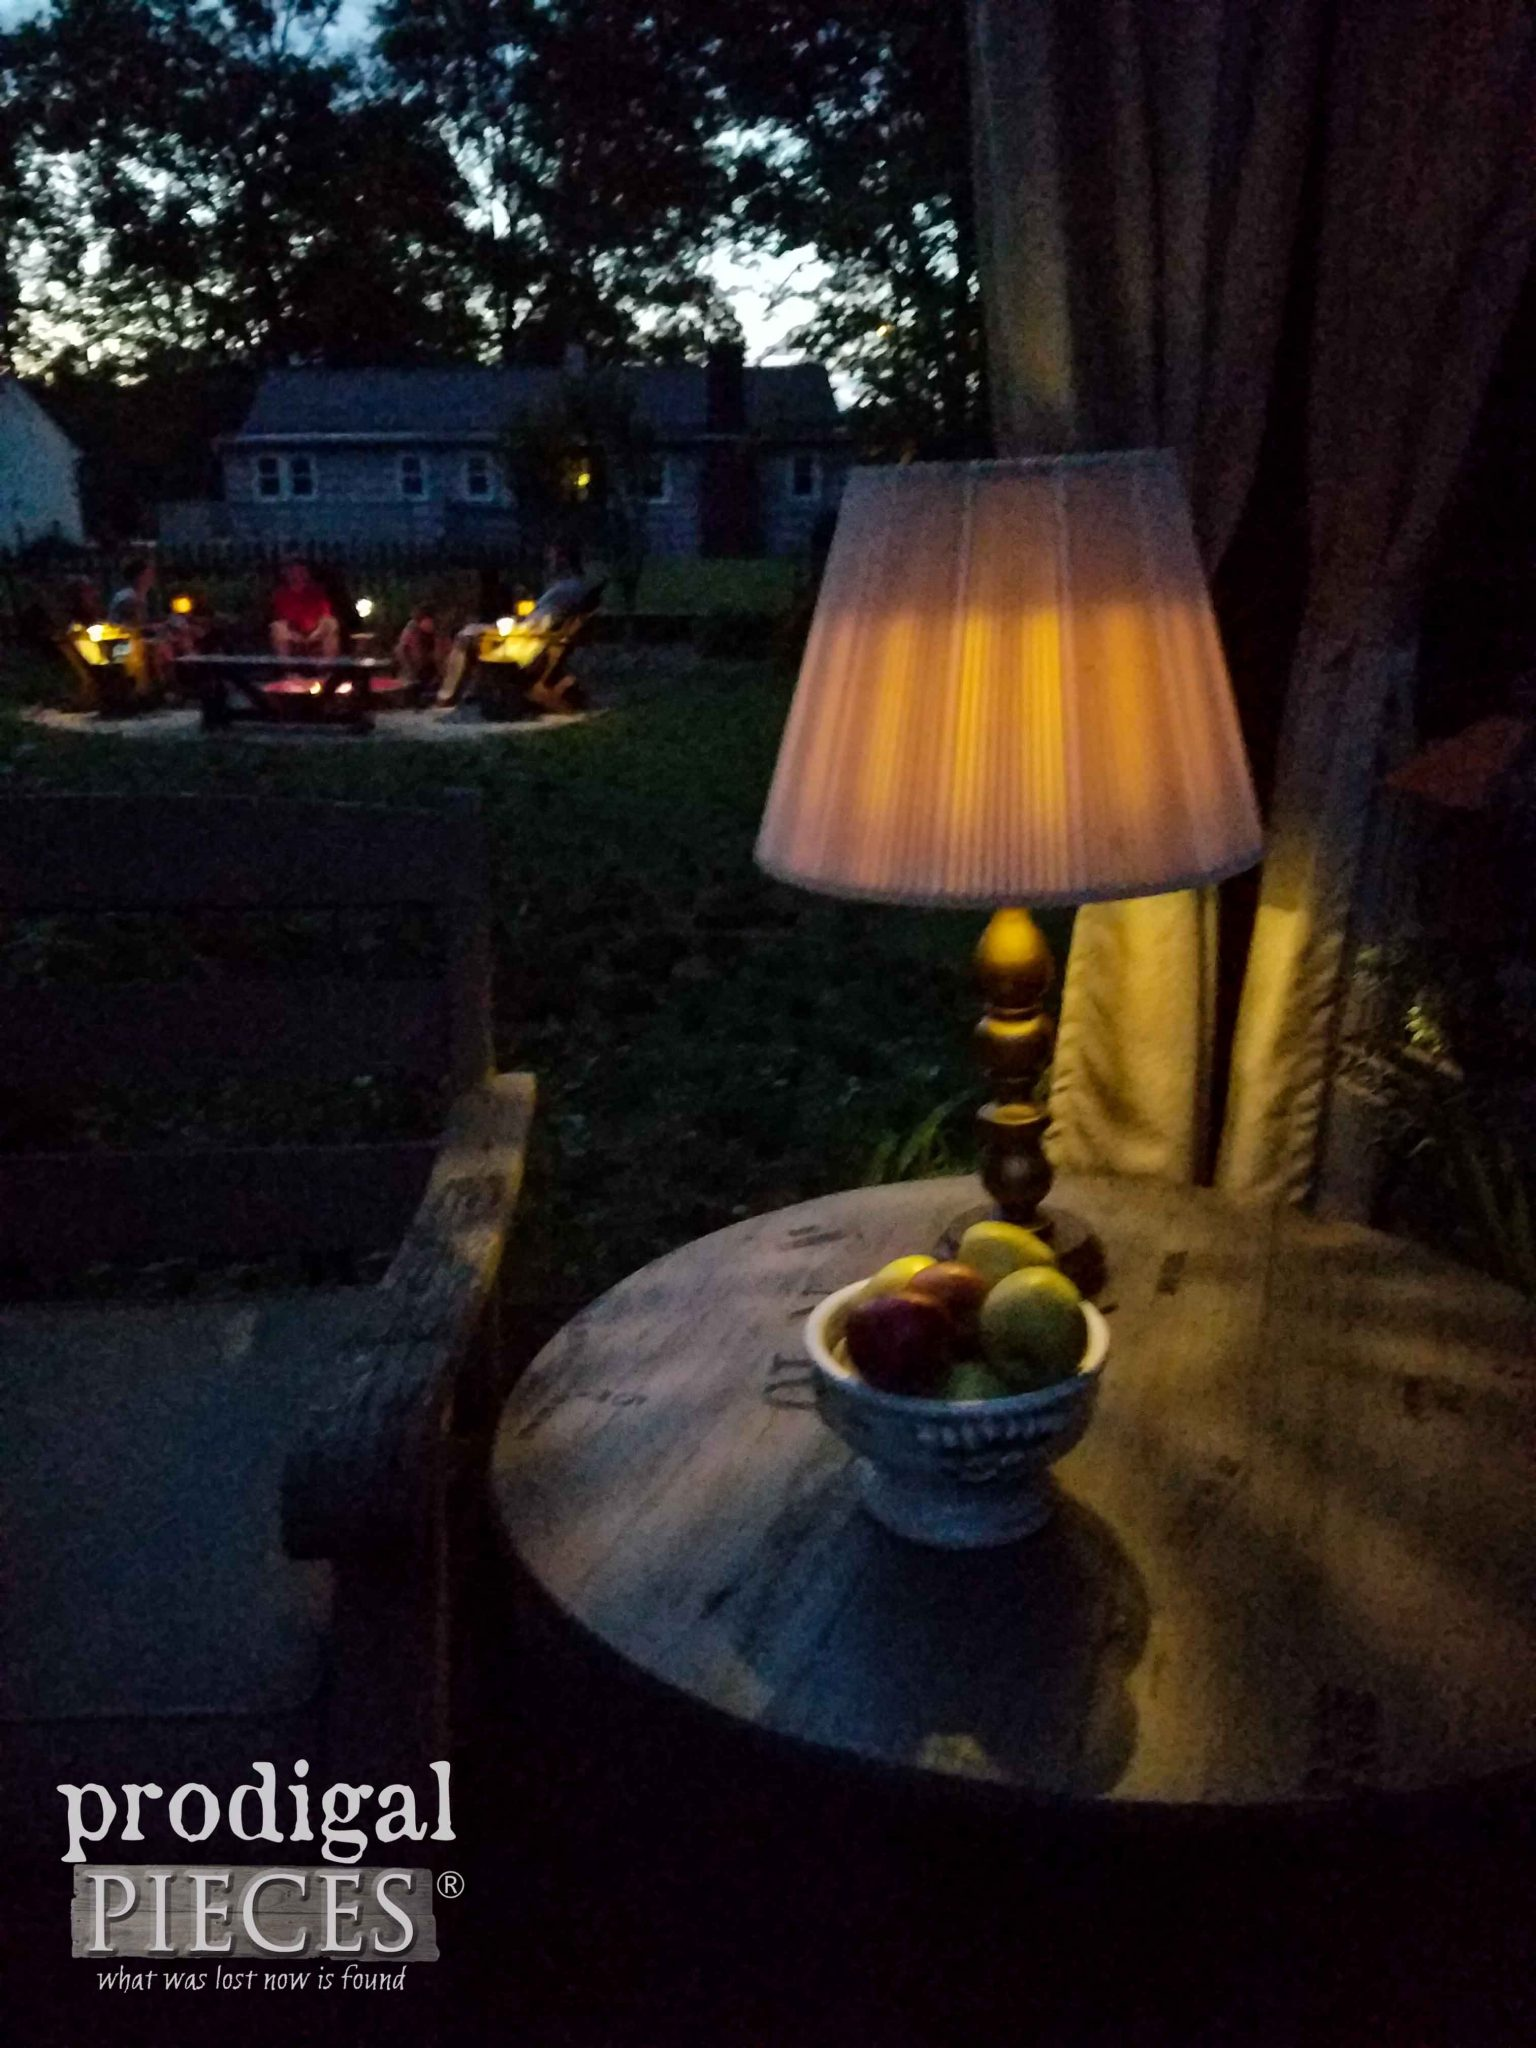 DIY Solar Powered Lamp Tutorial by Prodigal Pieces | prodigalpieces.com